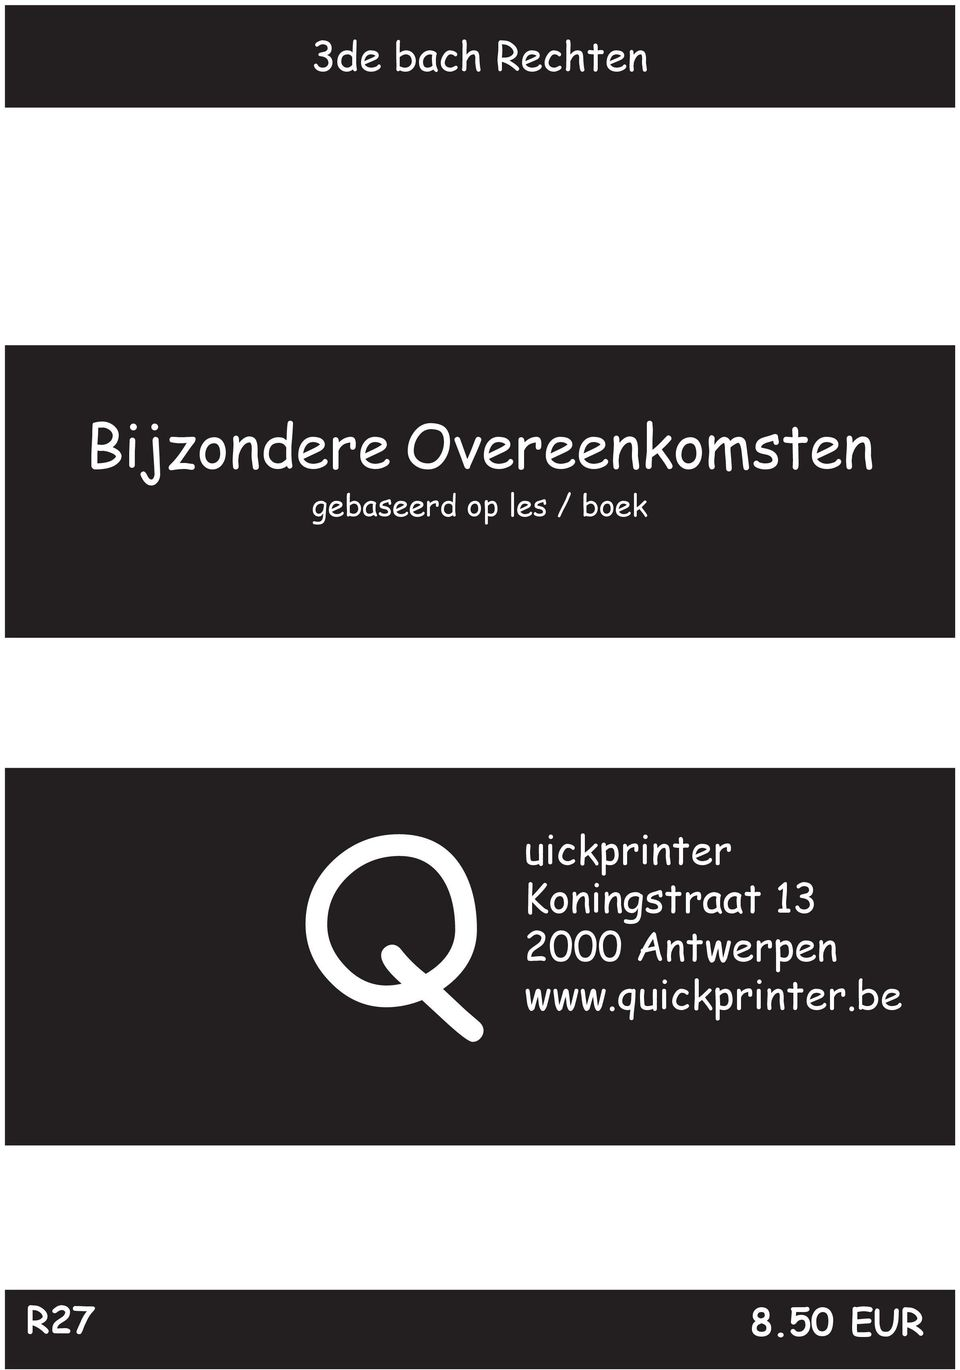 boek Q uickprinter Koningstraat 13